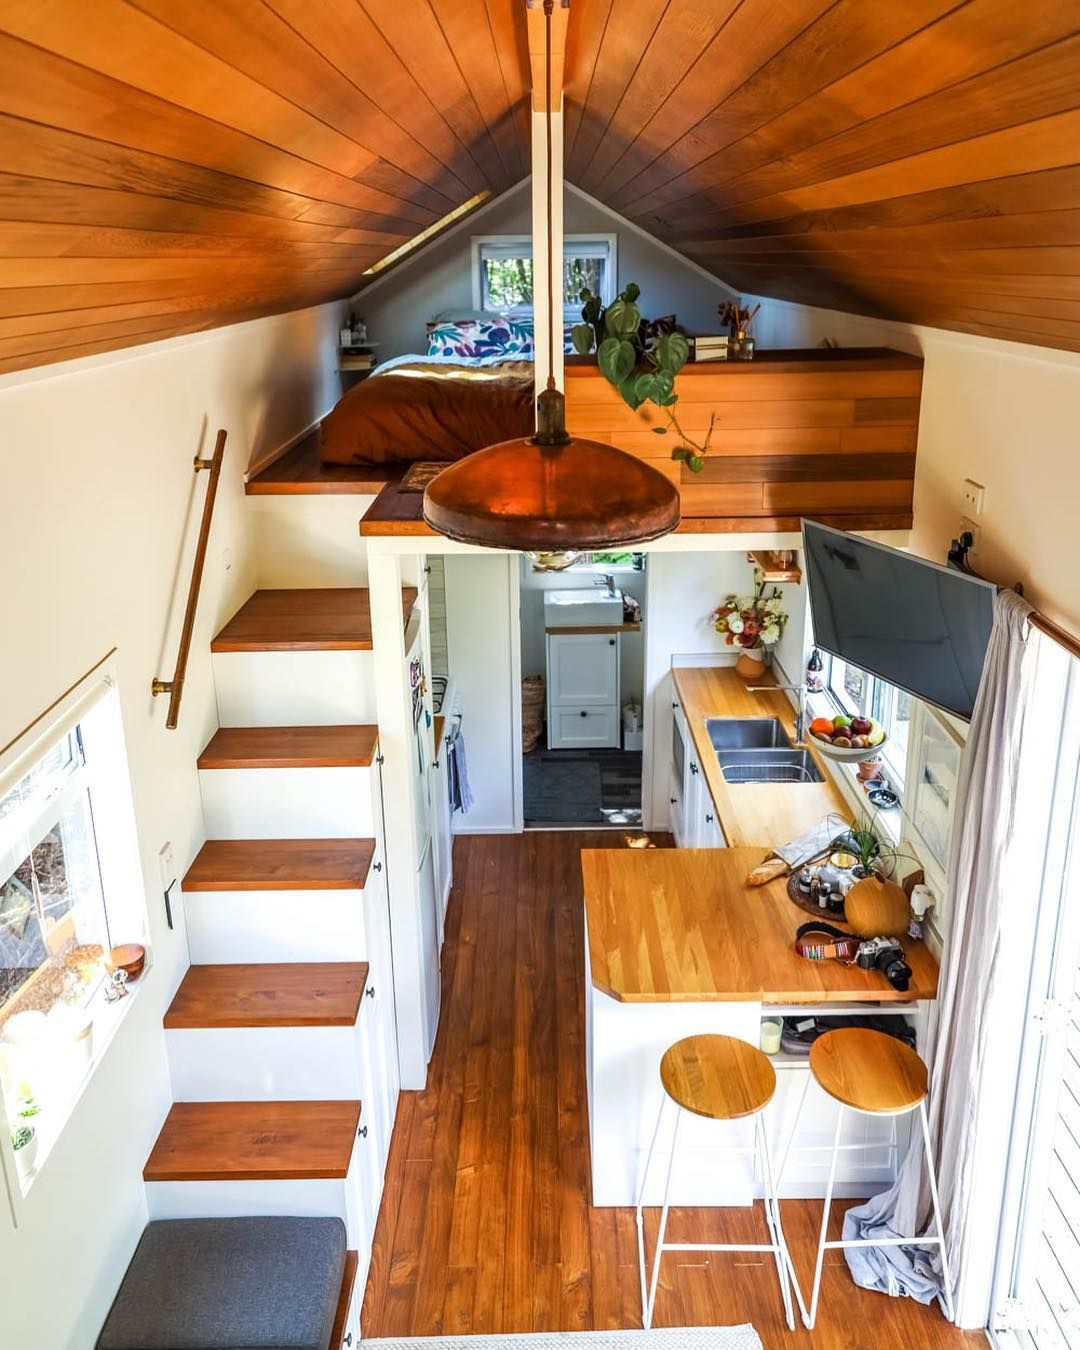 Living Big In A Tiny House On Instagram Such A Brilliantly Designed Tiny House No Space Gone To Waste Modern Tiny House Tiny House Design Home